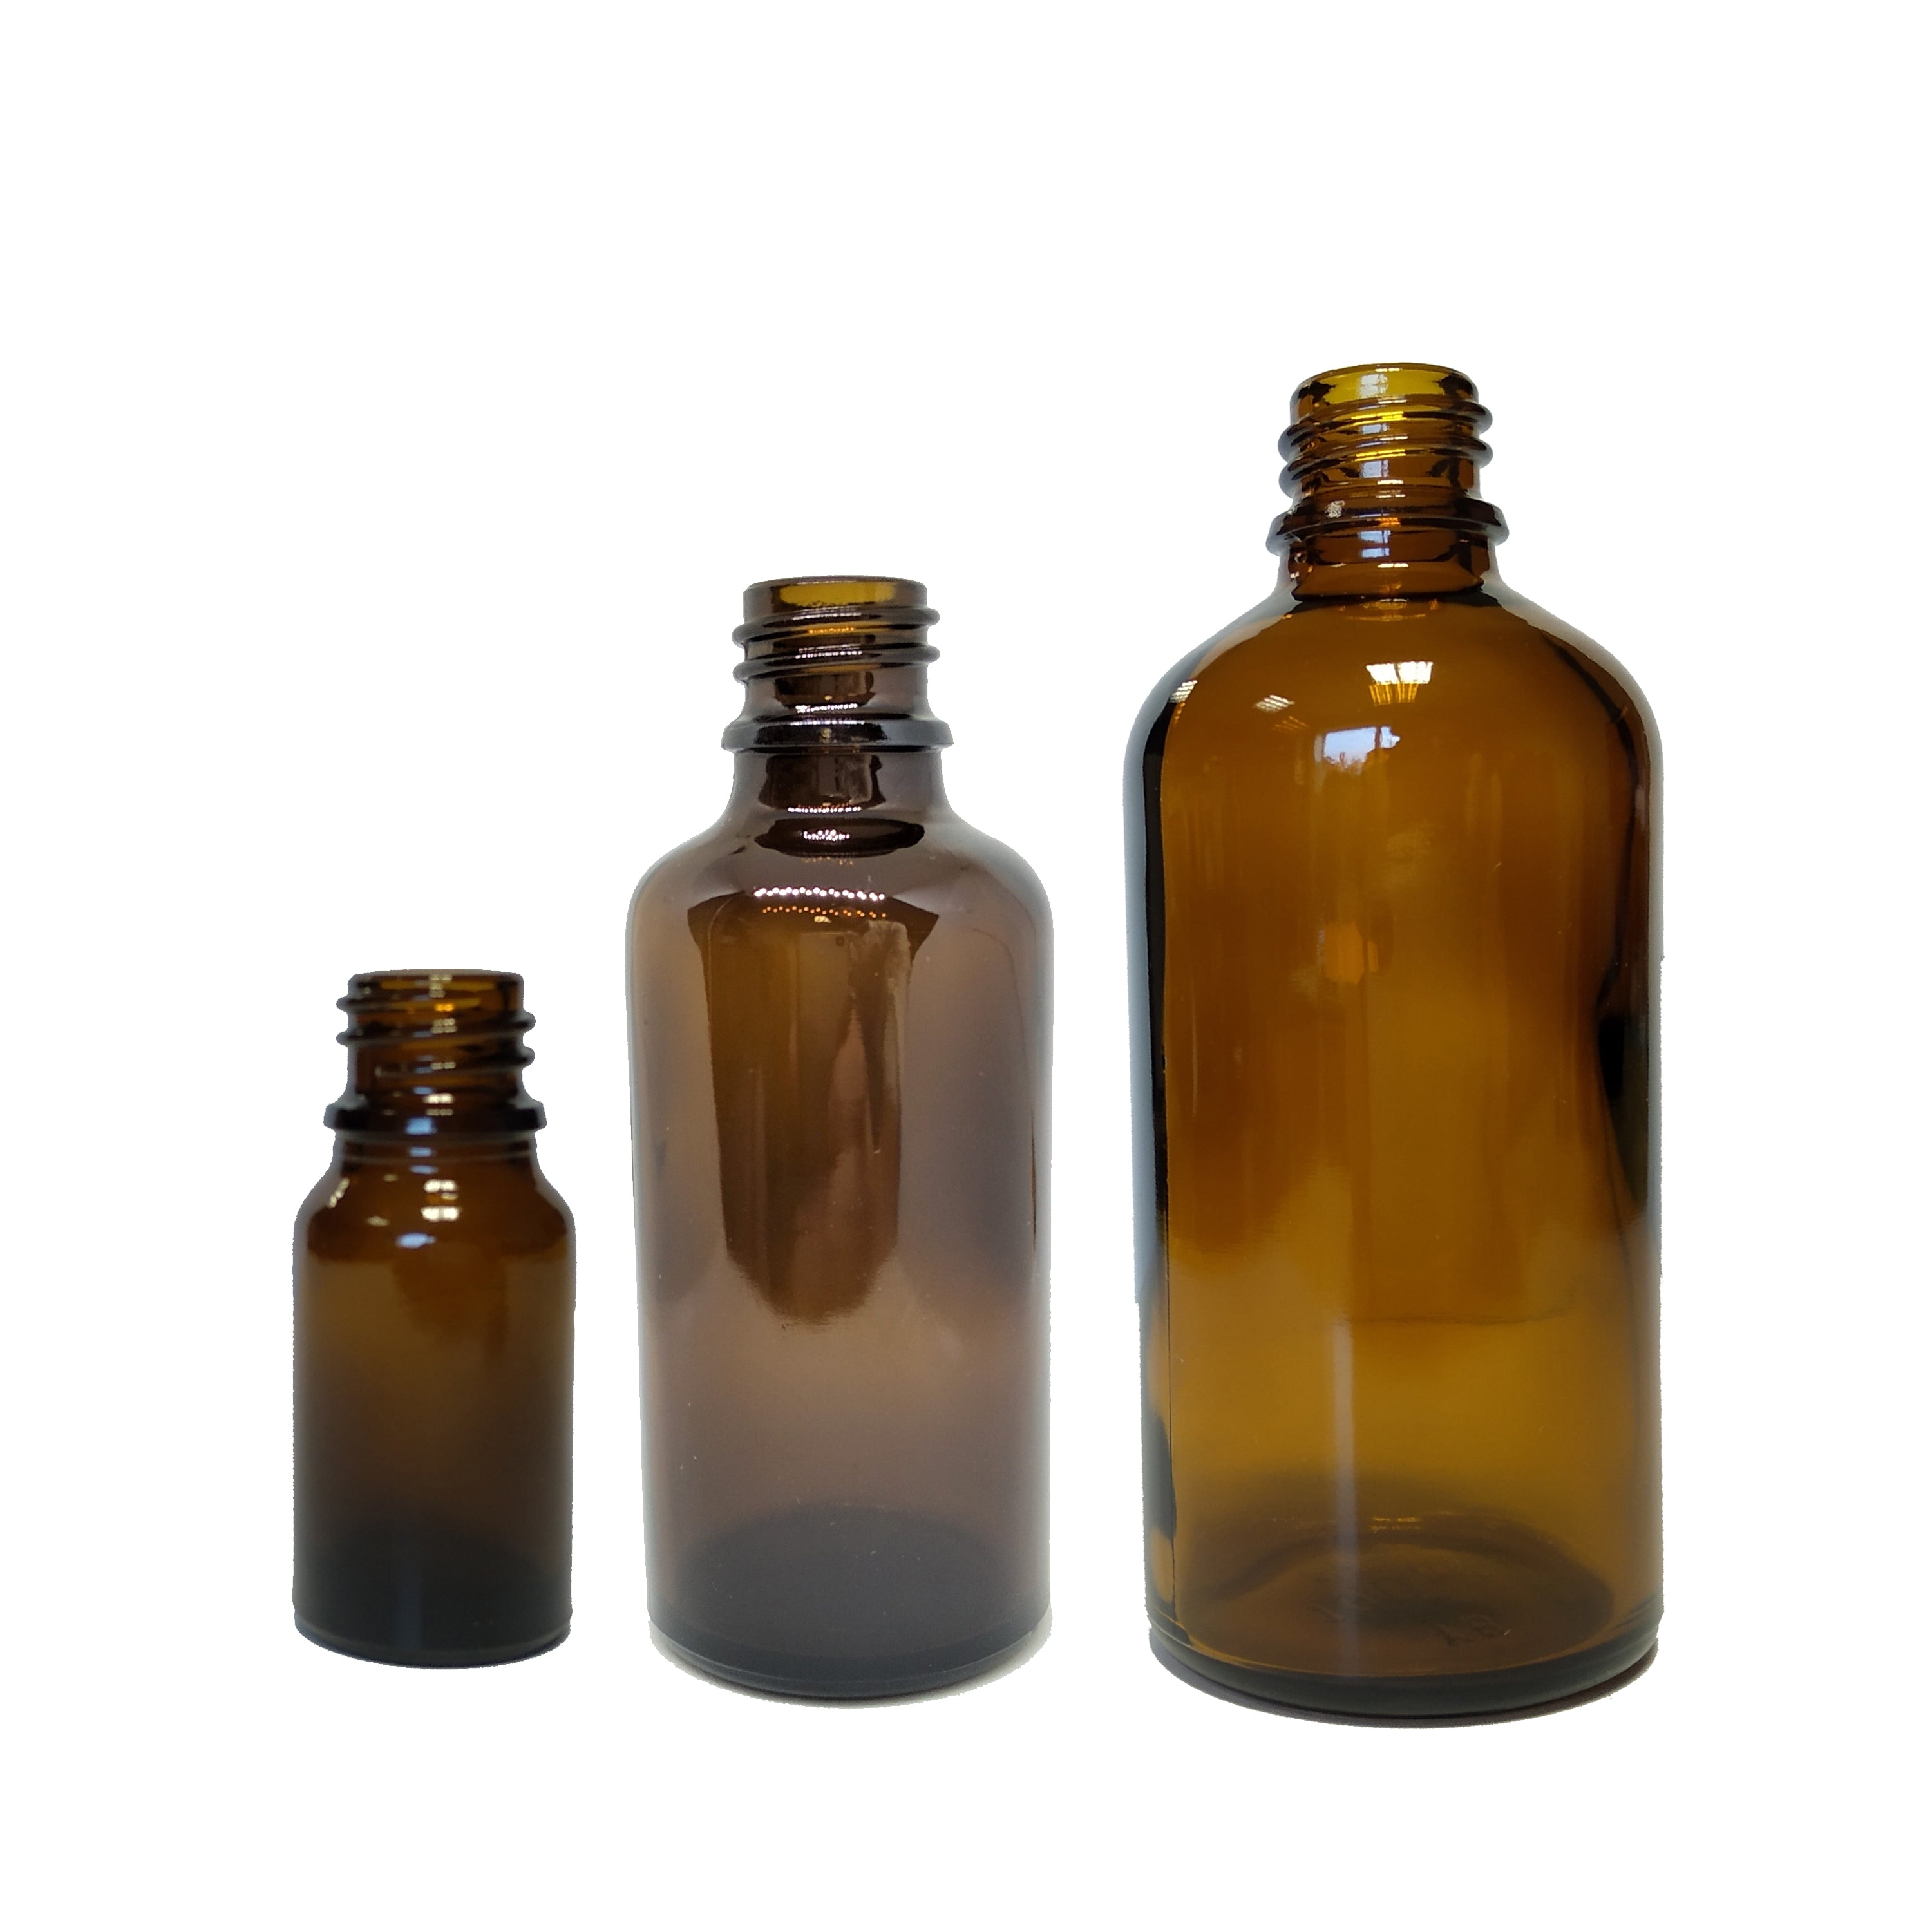 10ml / 50ml / 100ml Glass Amber Bottle (Pack of 20)